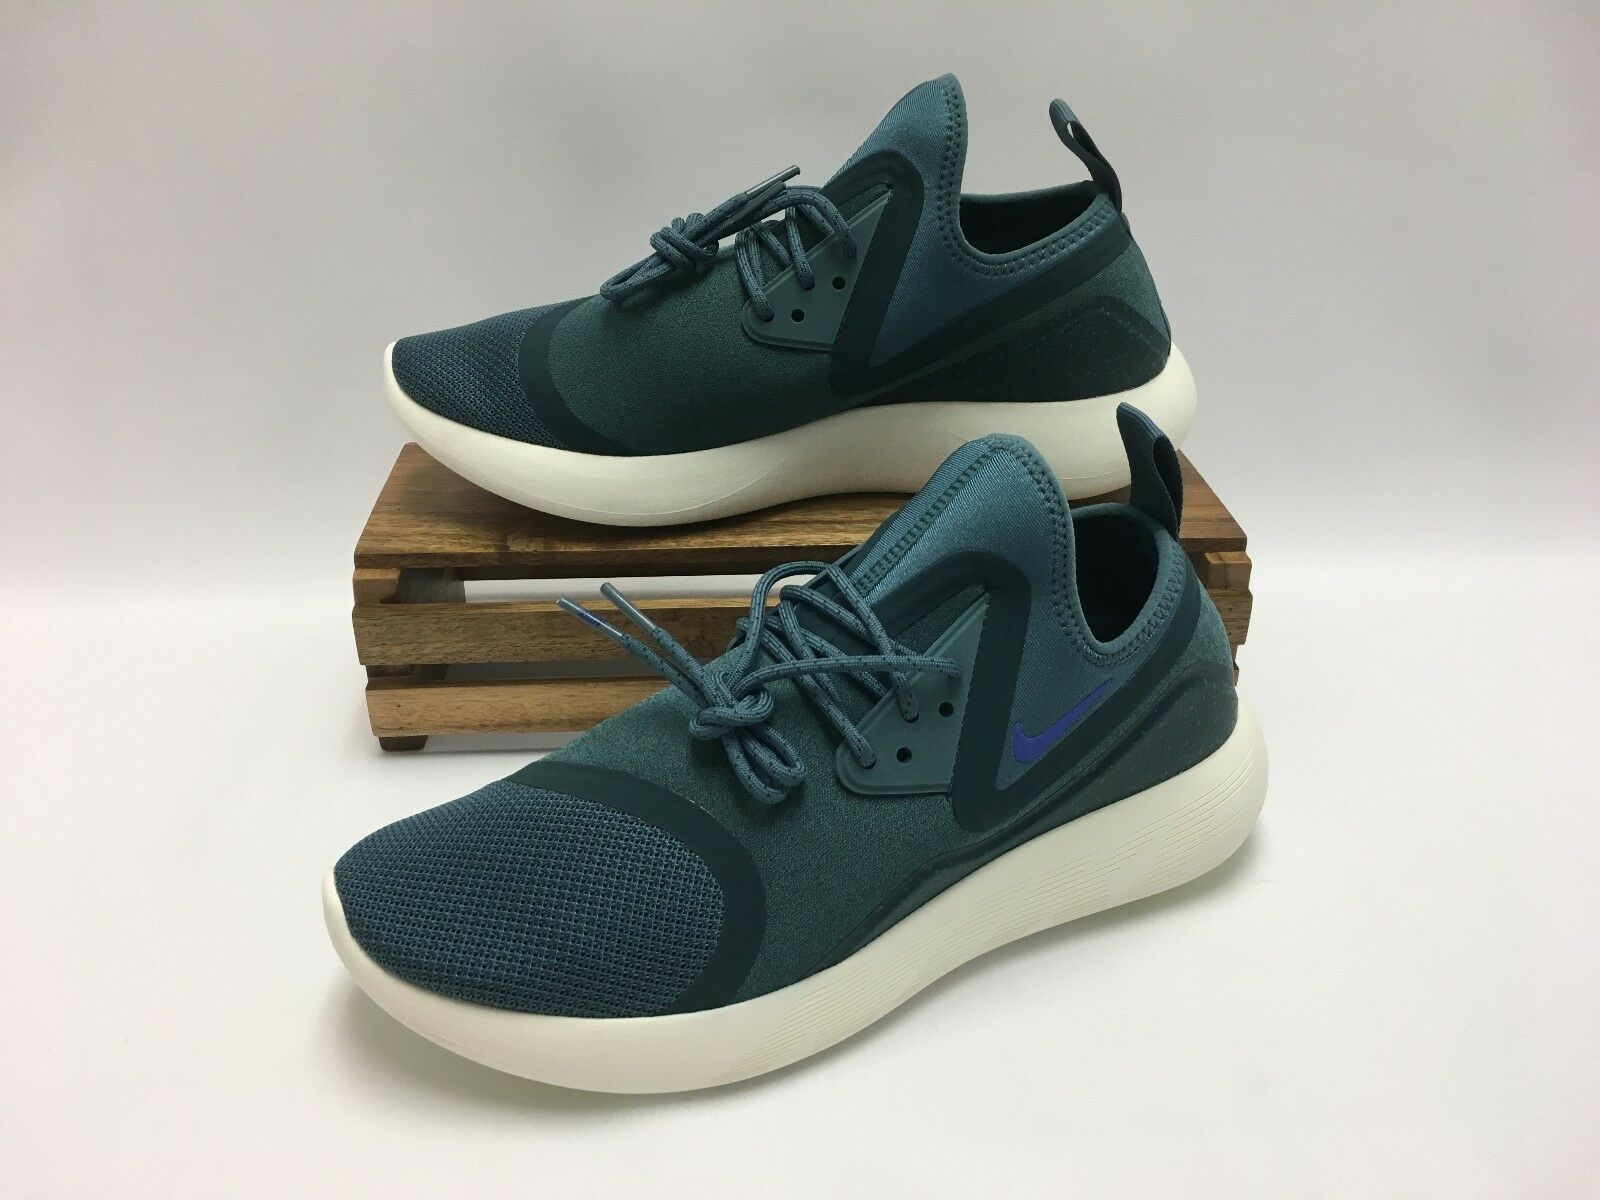 Nike Lunarcharge Essential Running Shoes Jade Teal Sail 923619-304 Men's Size 10